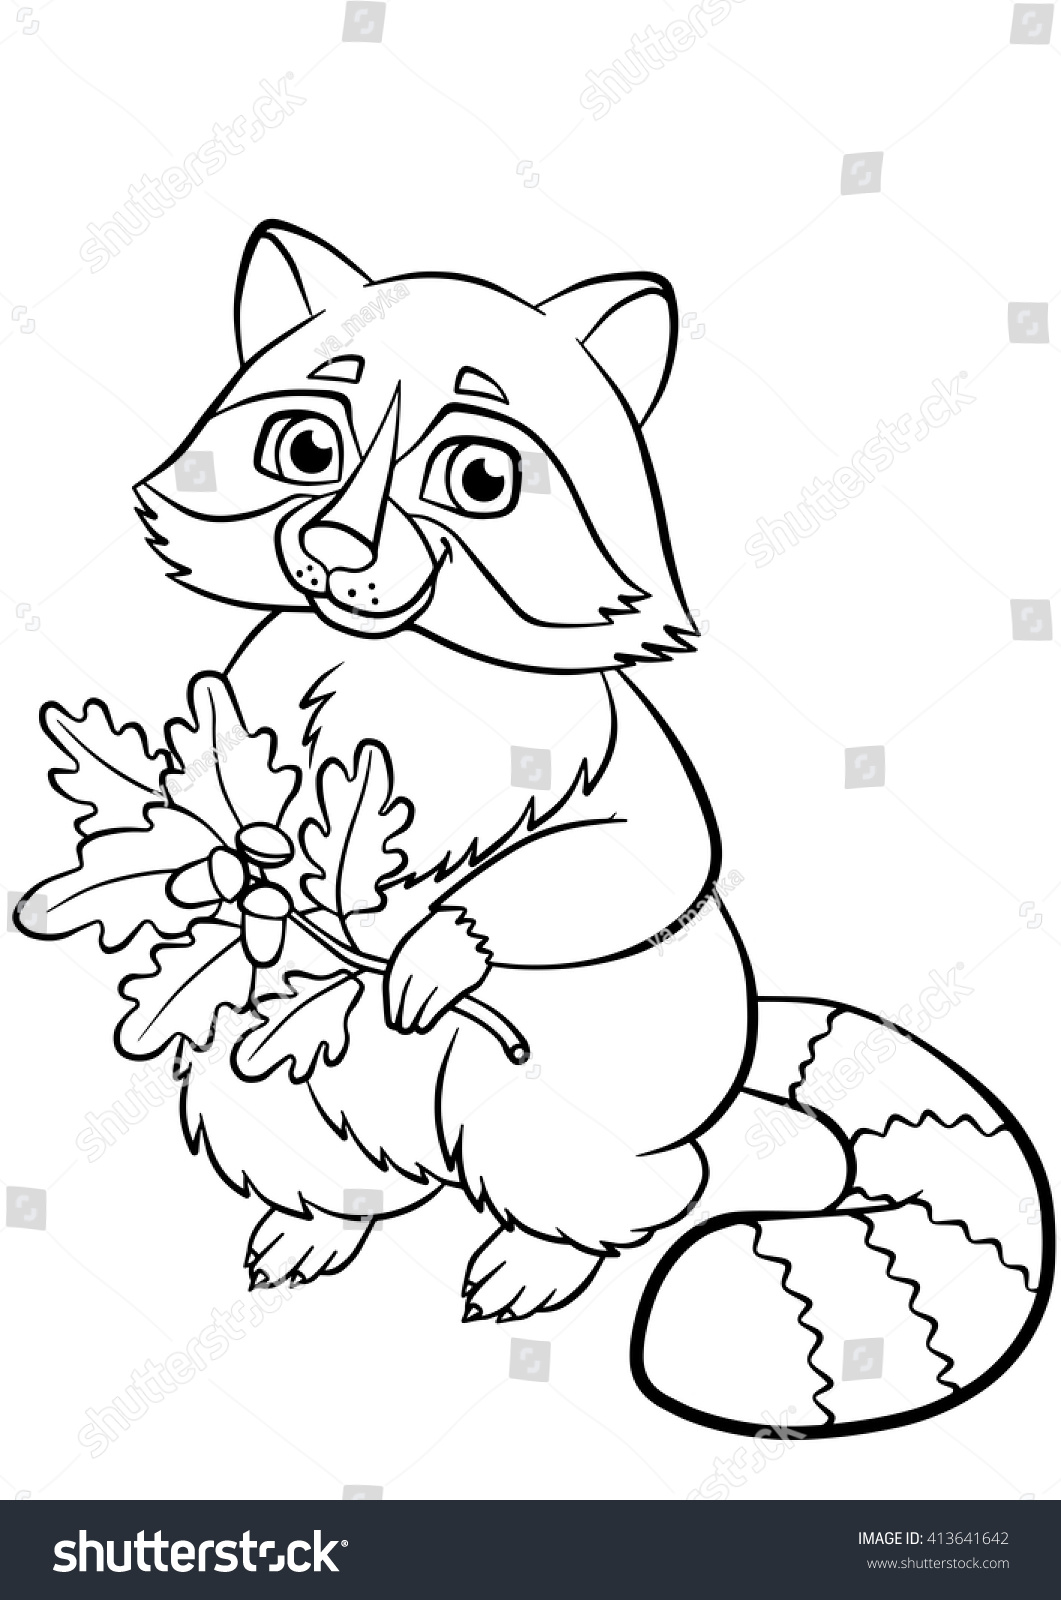 90 Cute Raccoon Coloring Pages , Free HD Download